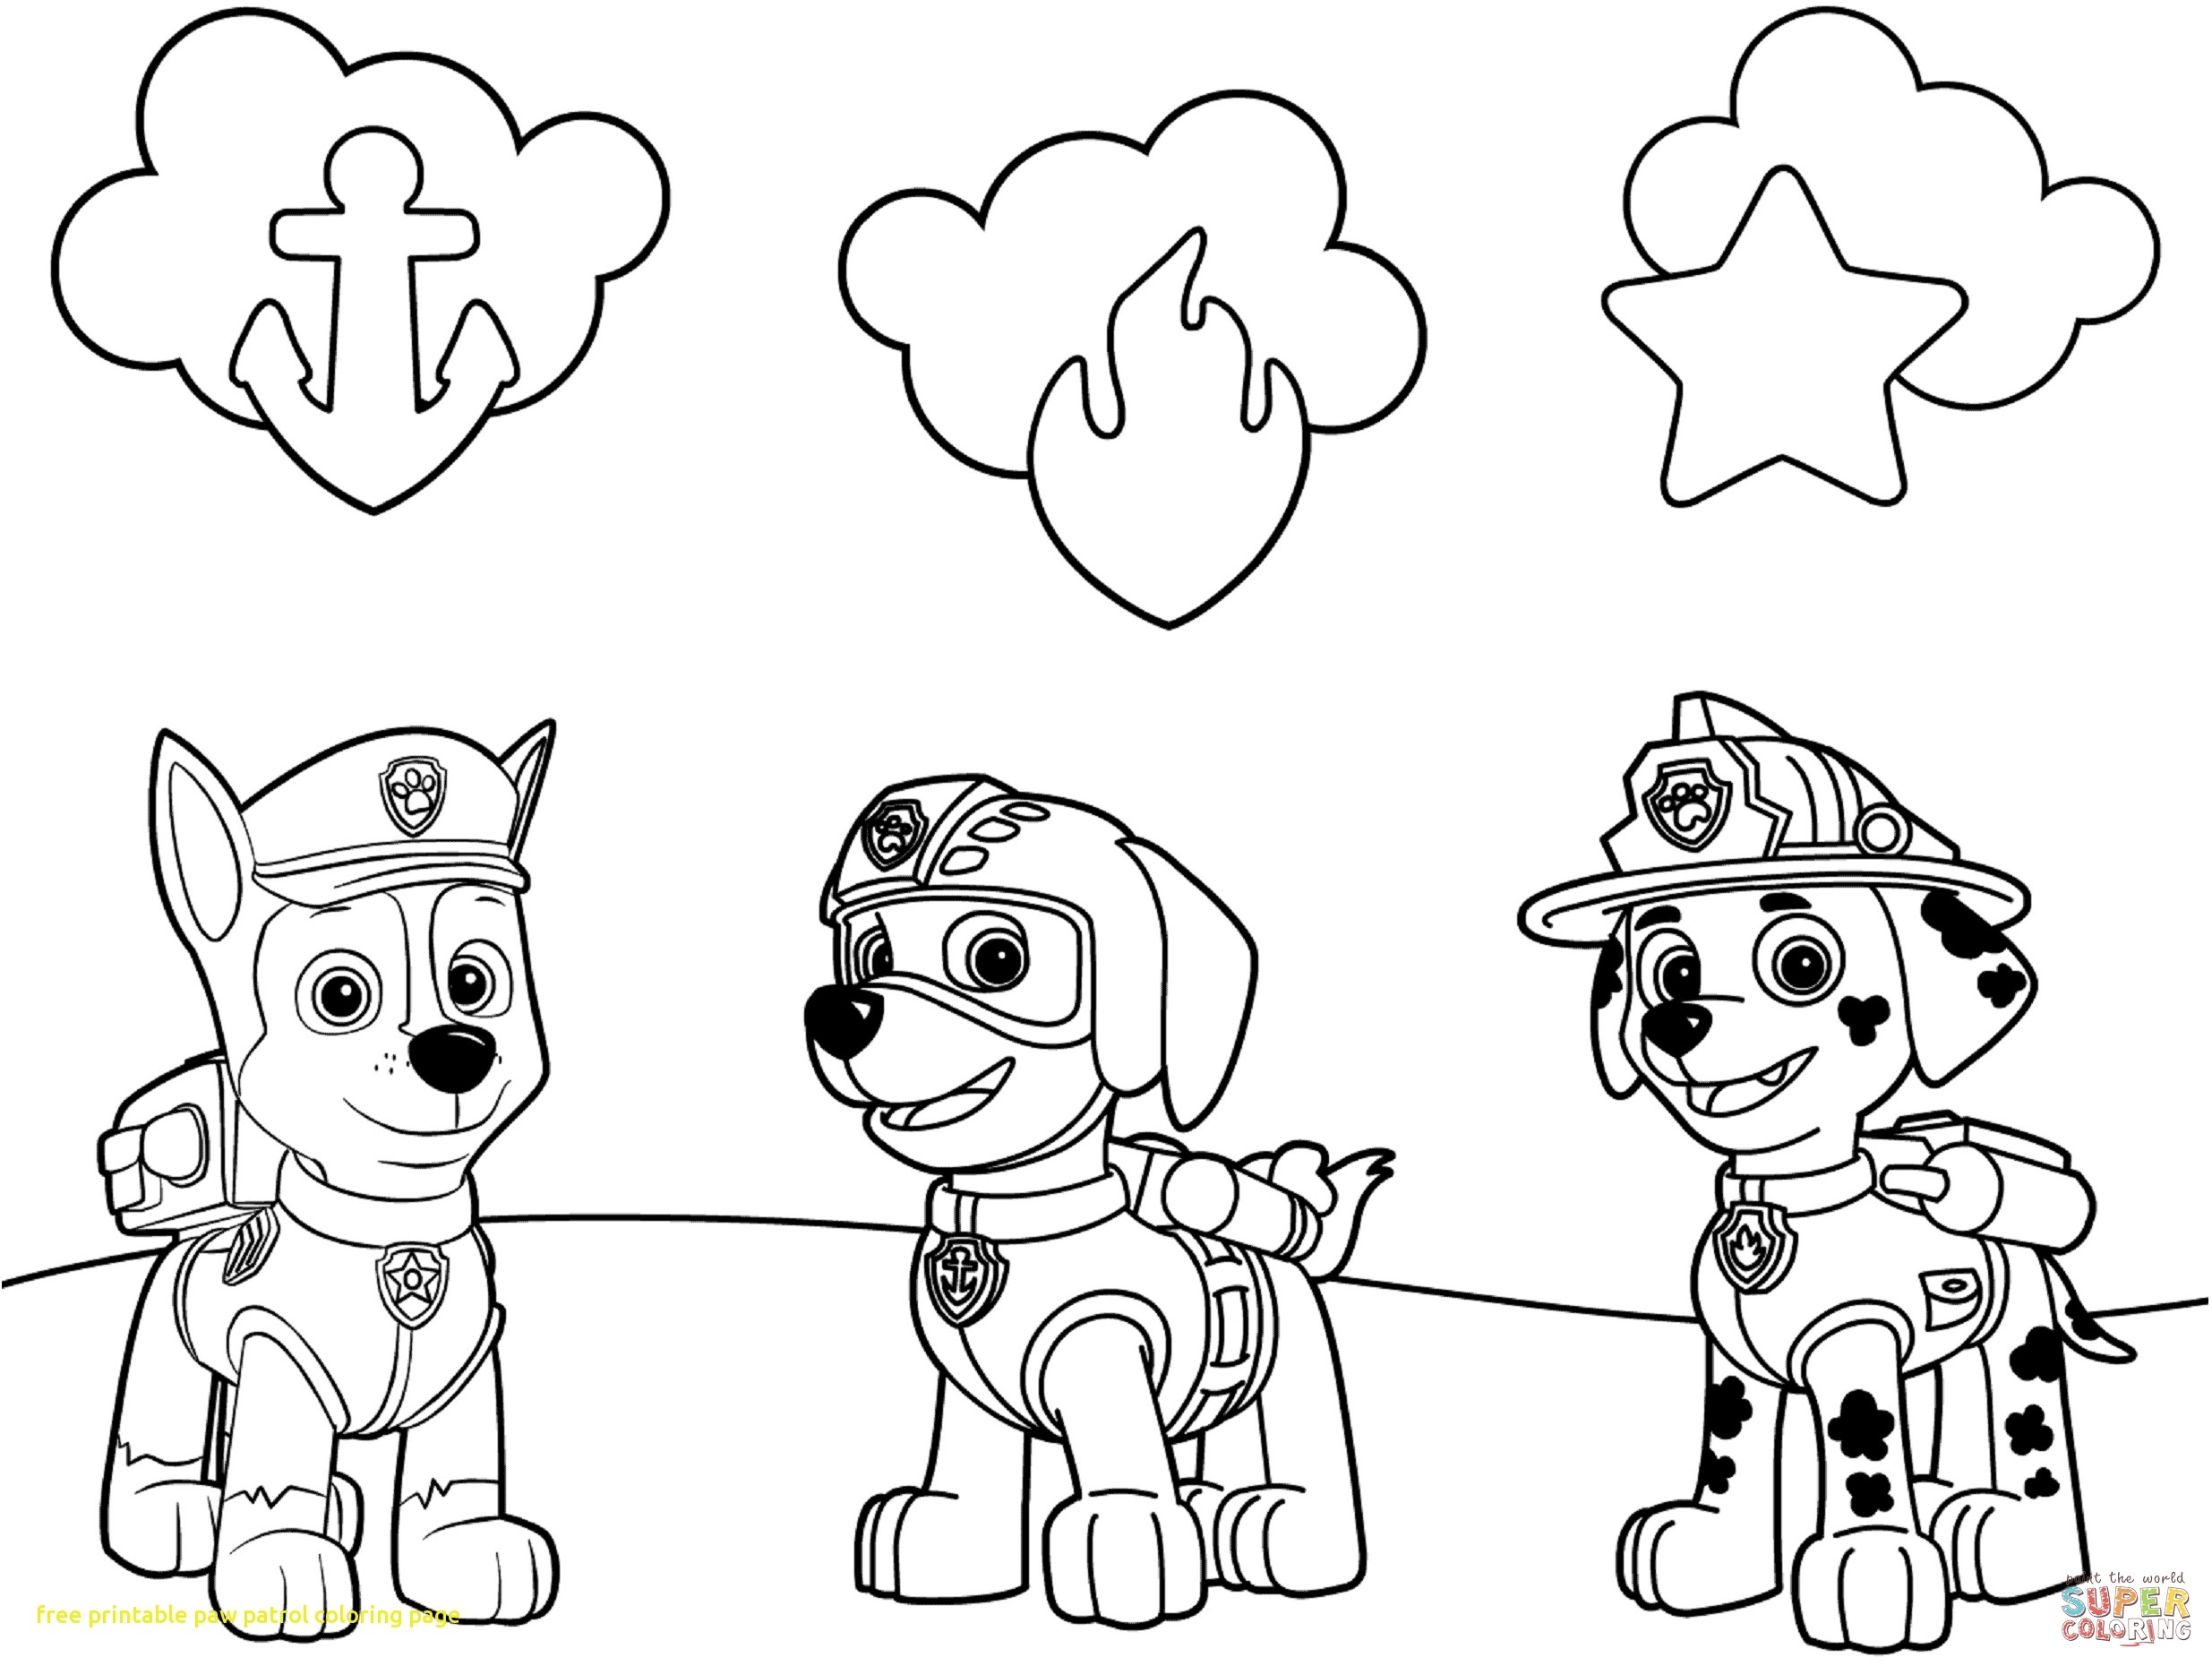 paw patrol coloring pages paw patrol coloring pages 27 print color craft patrol paw coloring pages